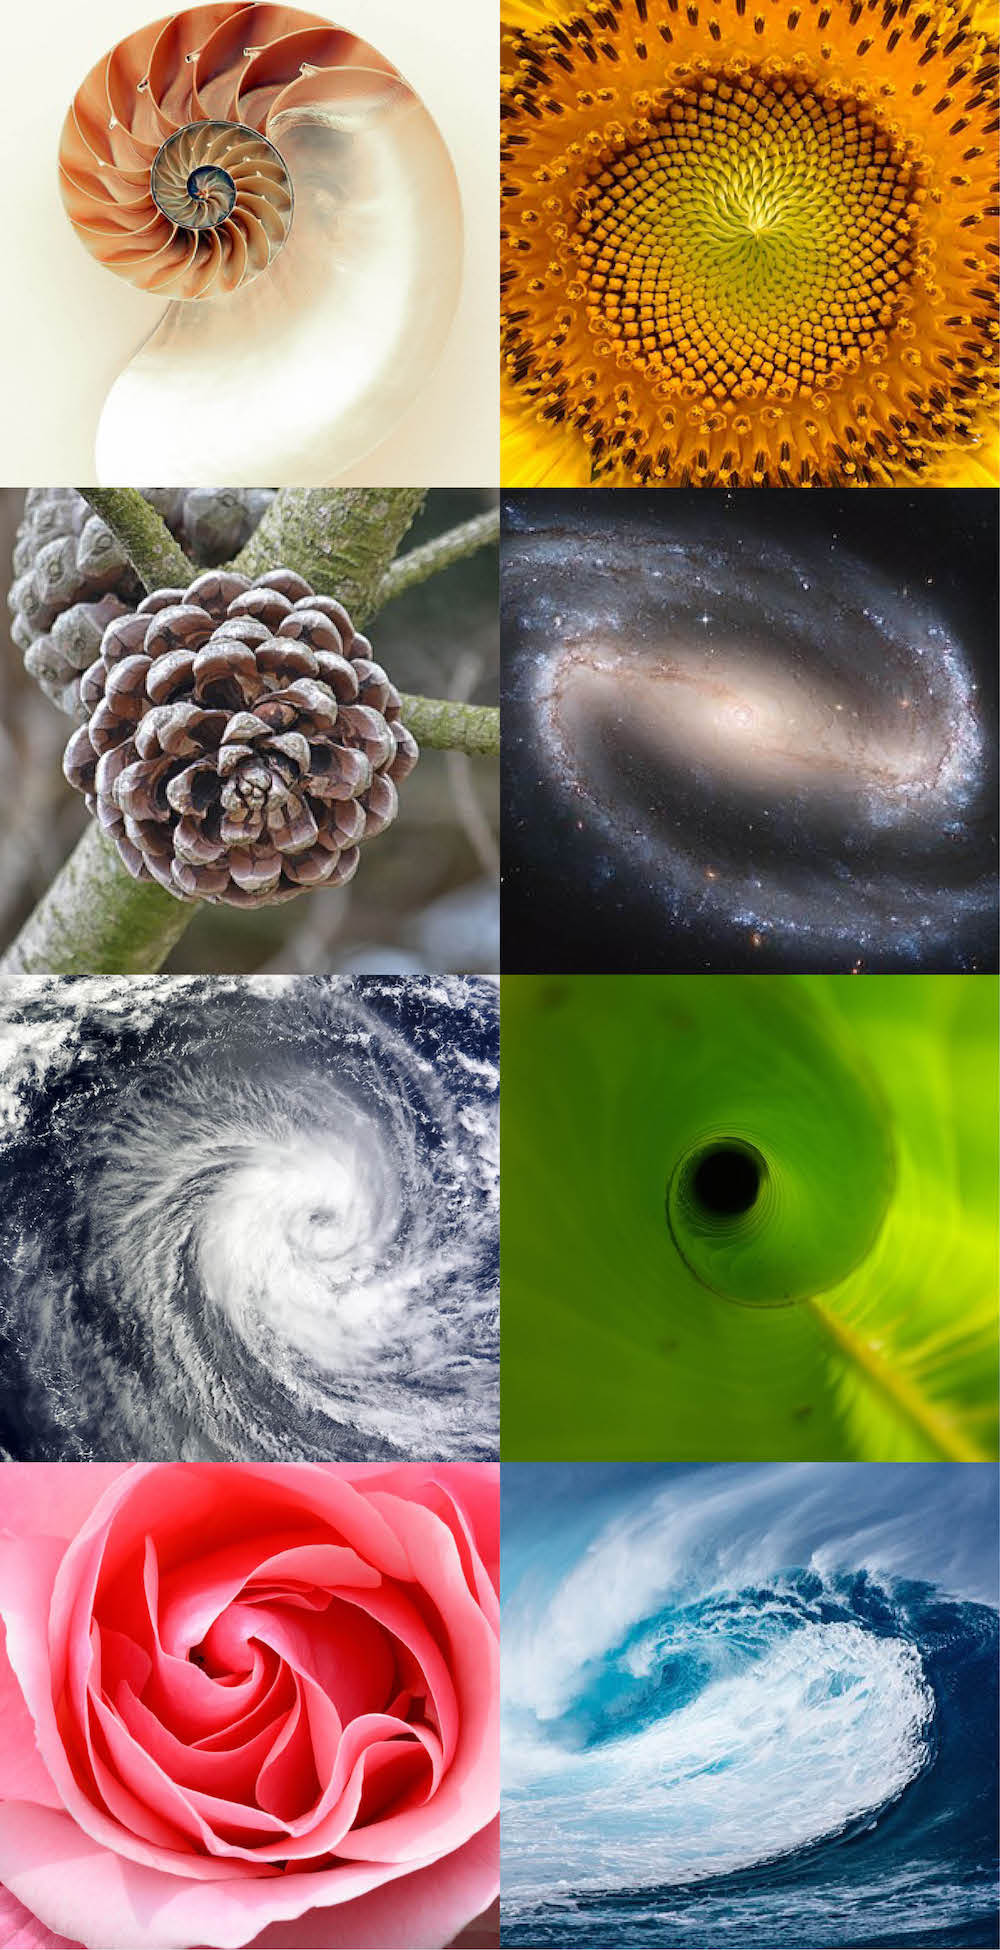 The golden ratio and fibinacci sequence in nature - God's fingerprint